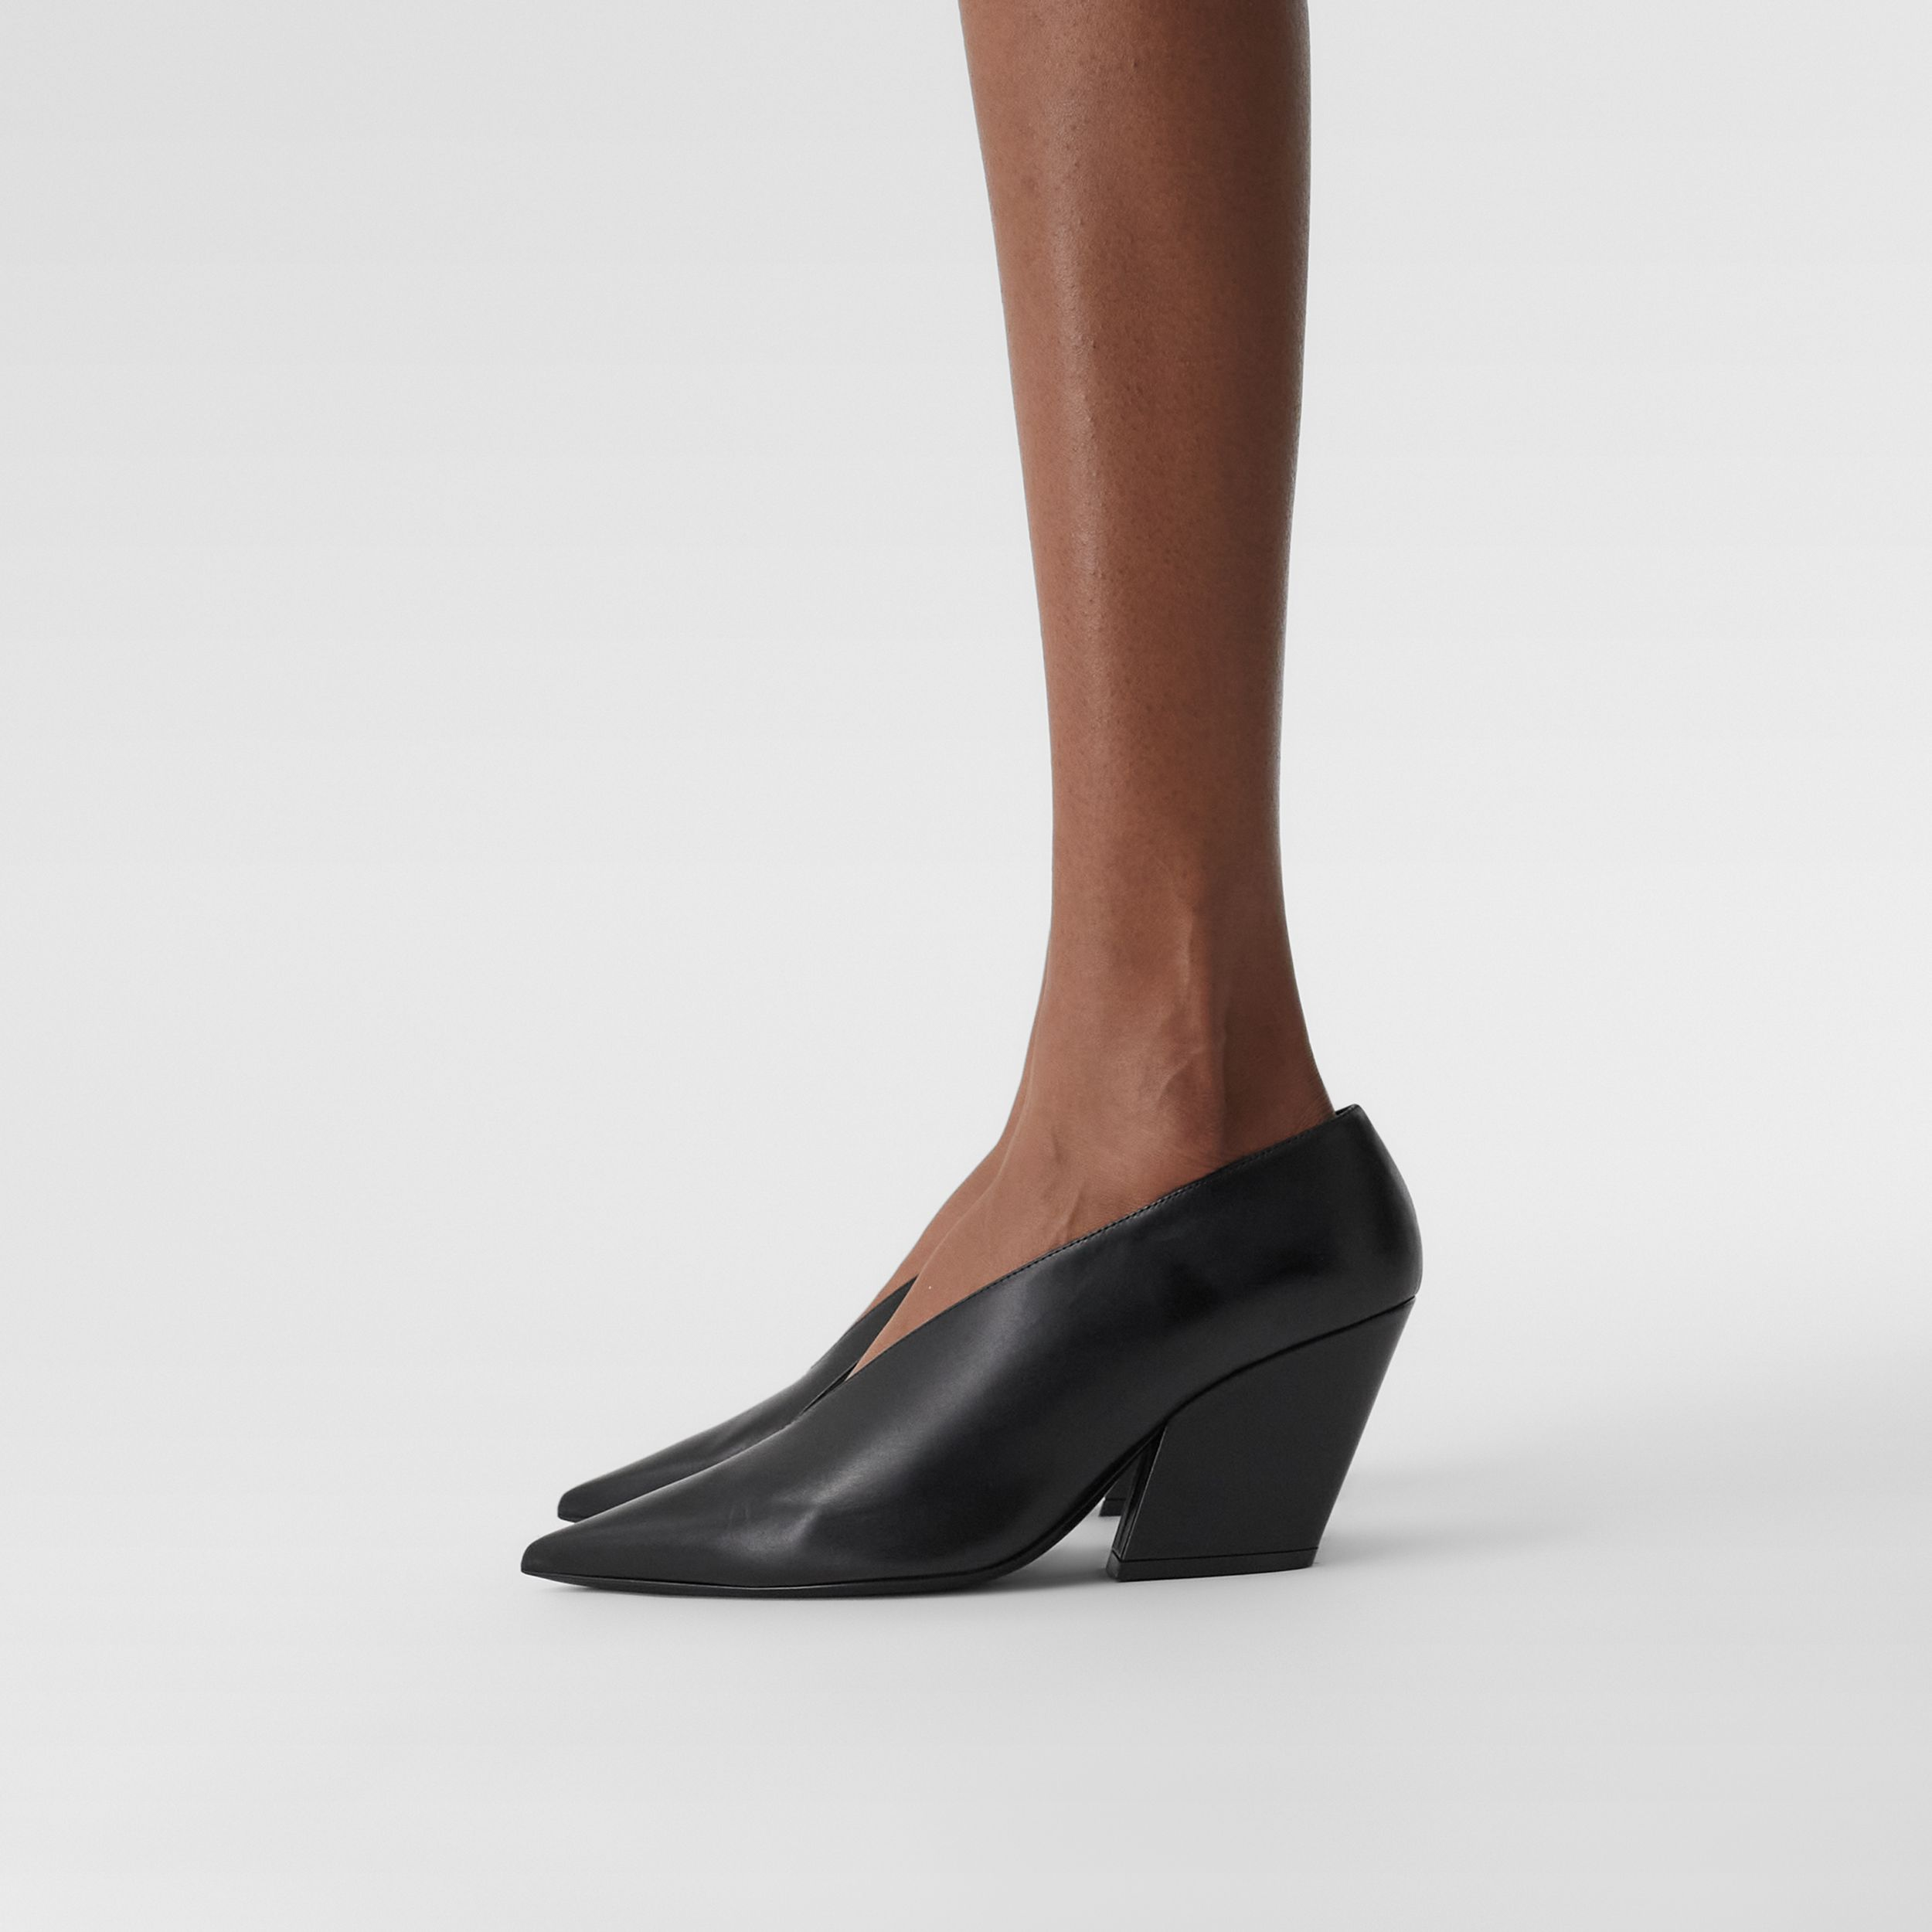 Leather Point-toe Pumps in Black - Women | Burberry - 3